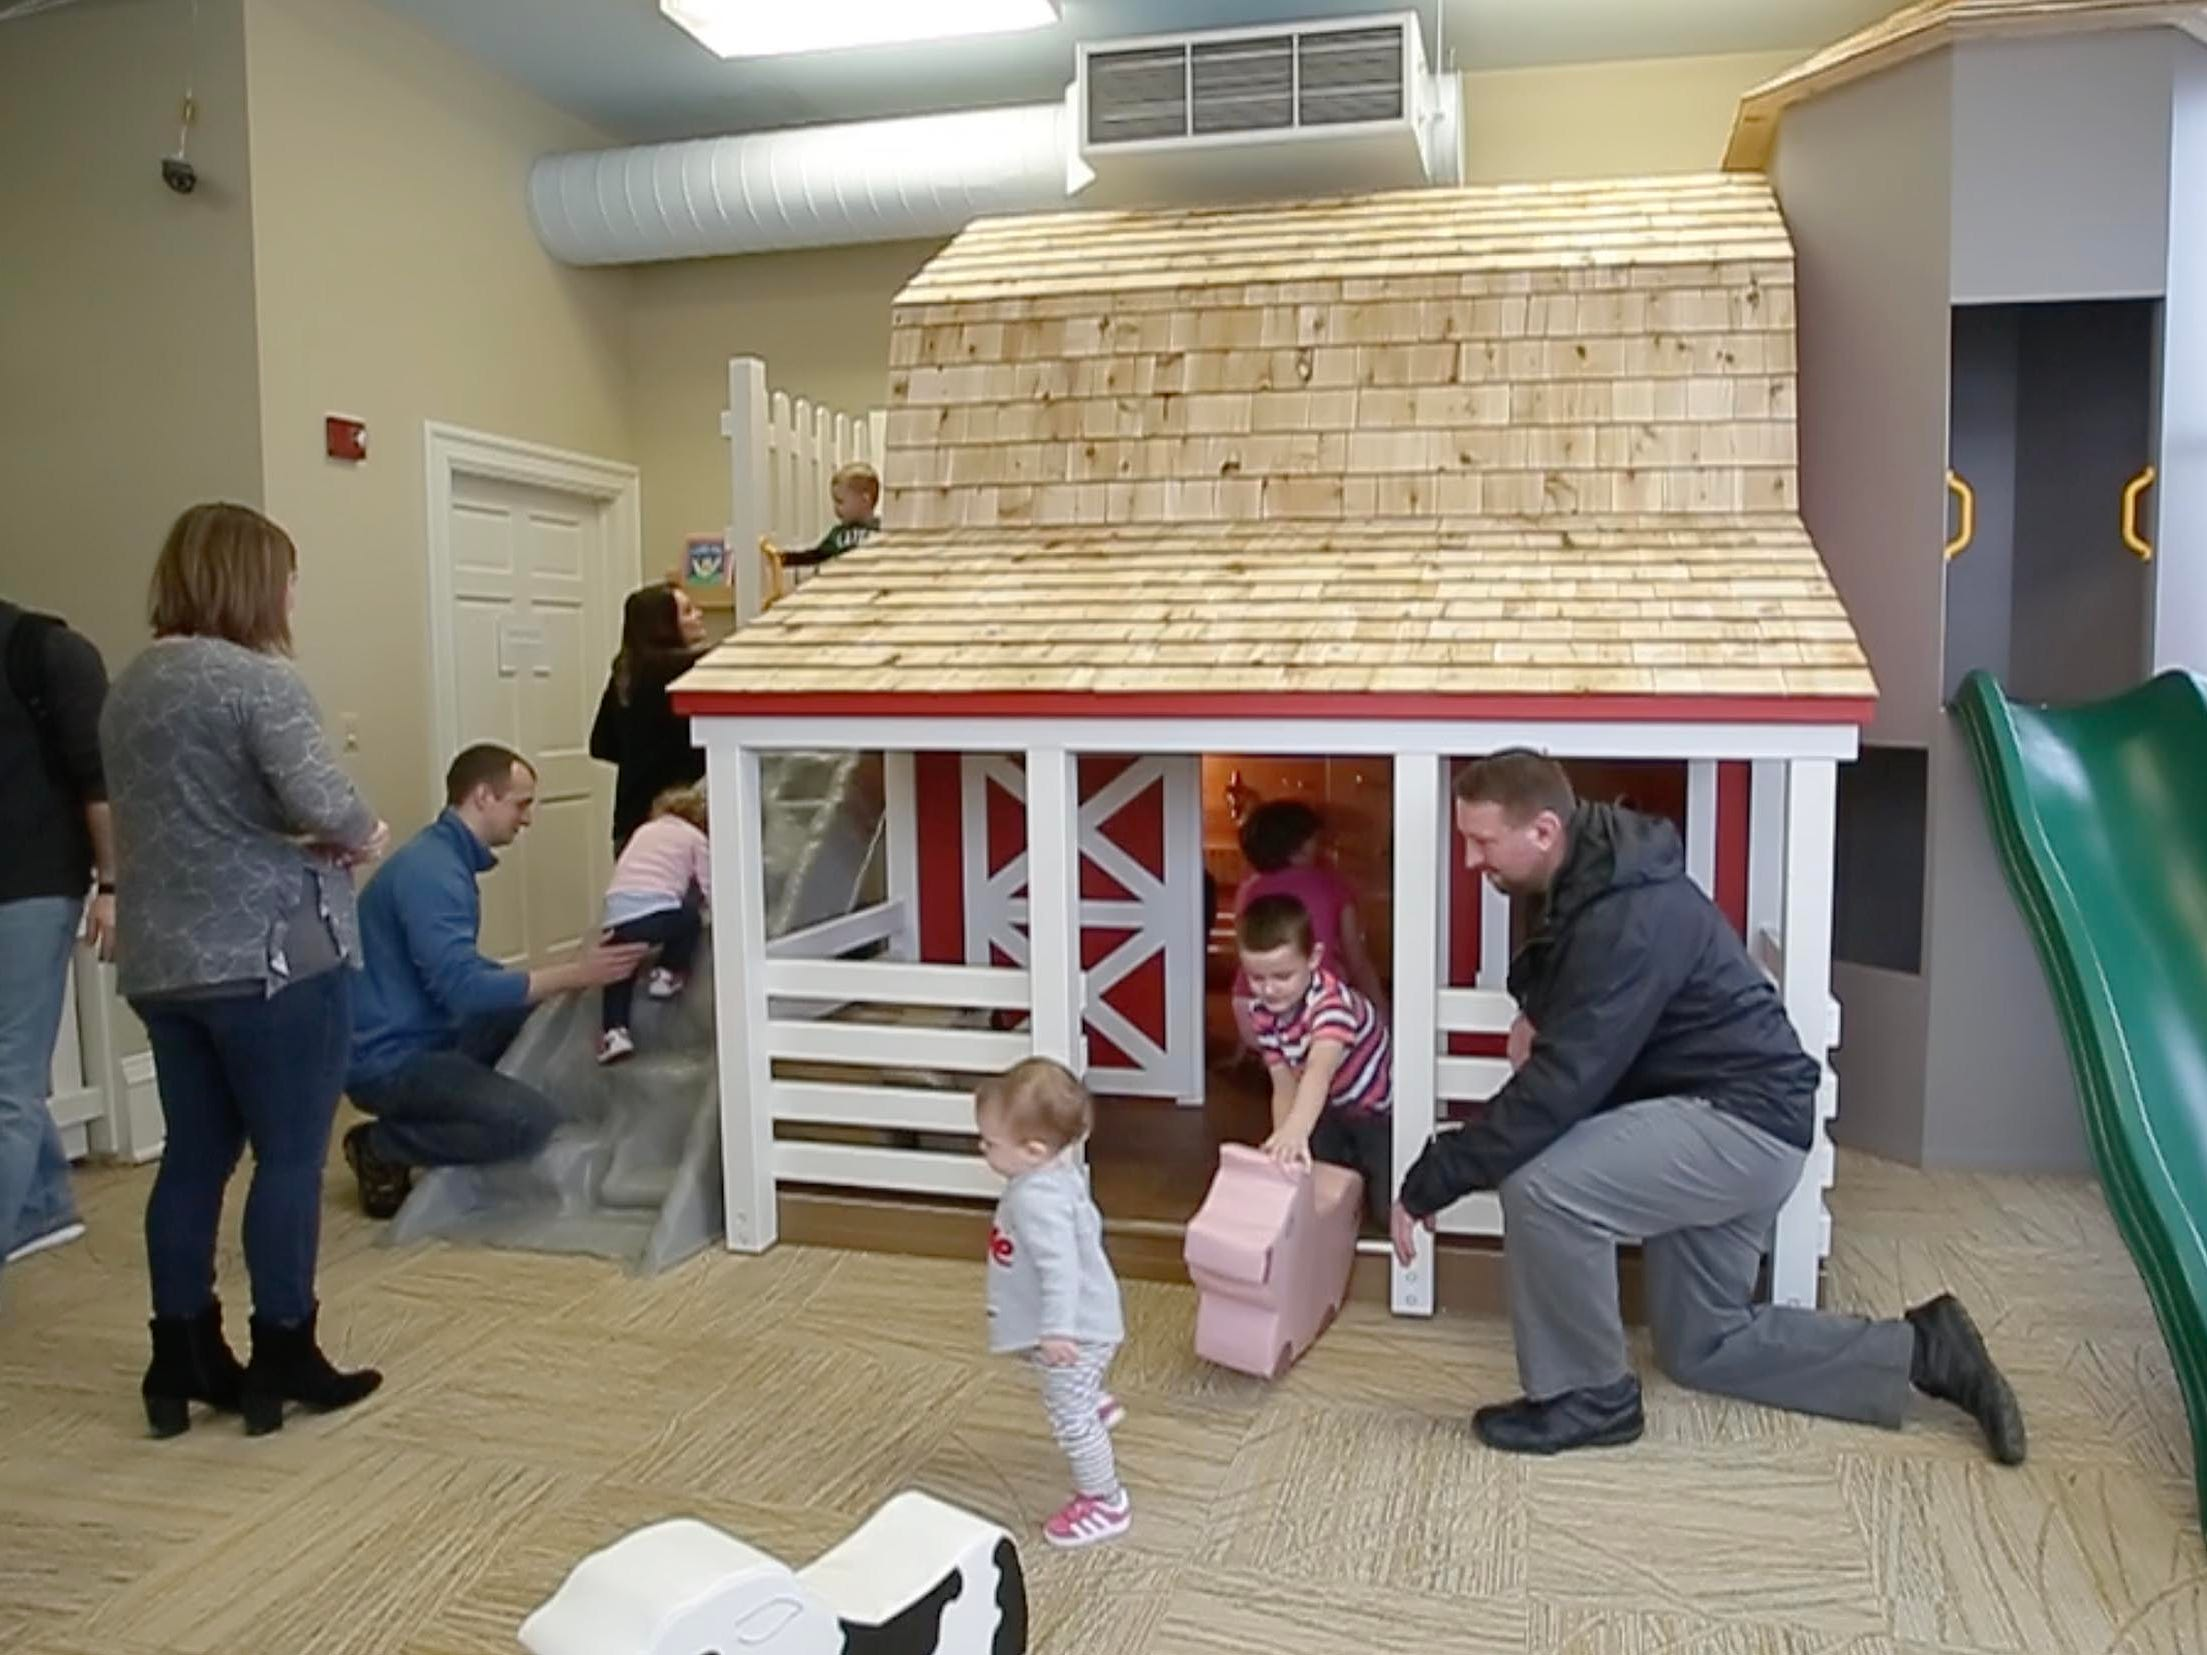 Youngsters play in the new Toddler Barnyard at the Above and Beyond Children's Museum, Saturday, February 23, 2019, in Sheboygan, Wis.